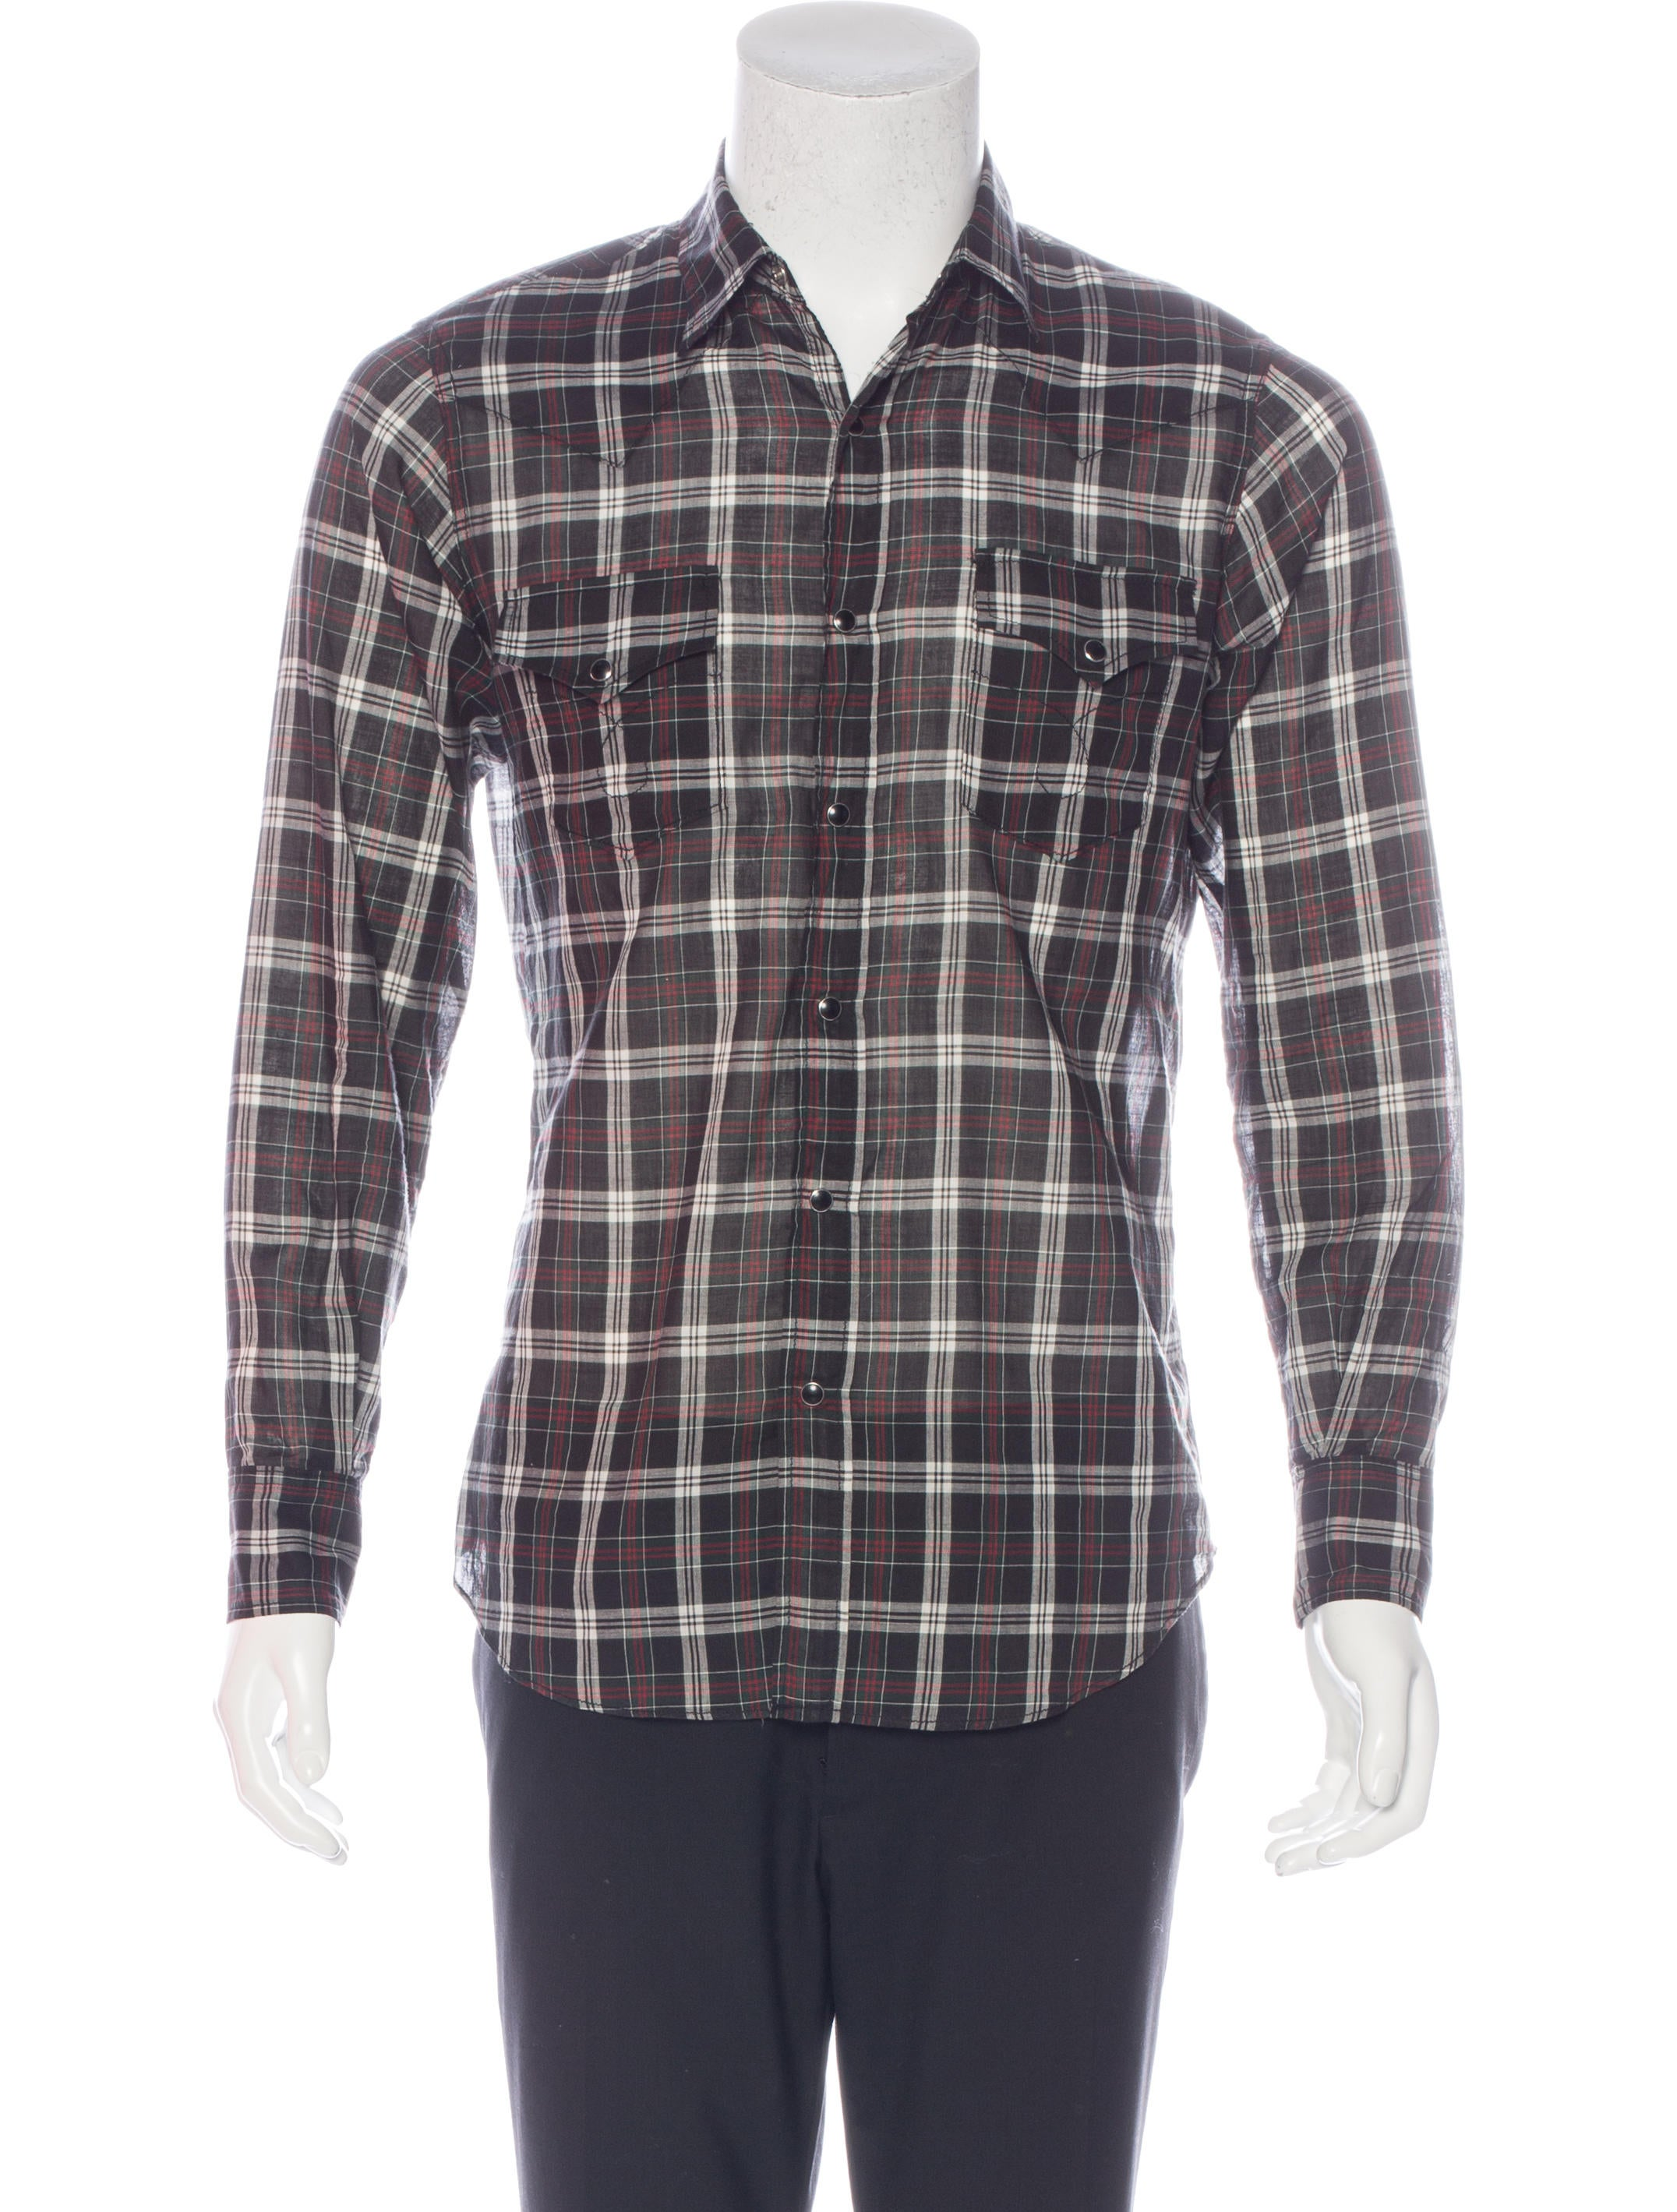 Free shipping BOTH ways on wrangler long sleeve plaid western shirt, from our vast selection of styles. Fast delivery, and 24/7/ real-person service with a smile. Click or call